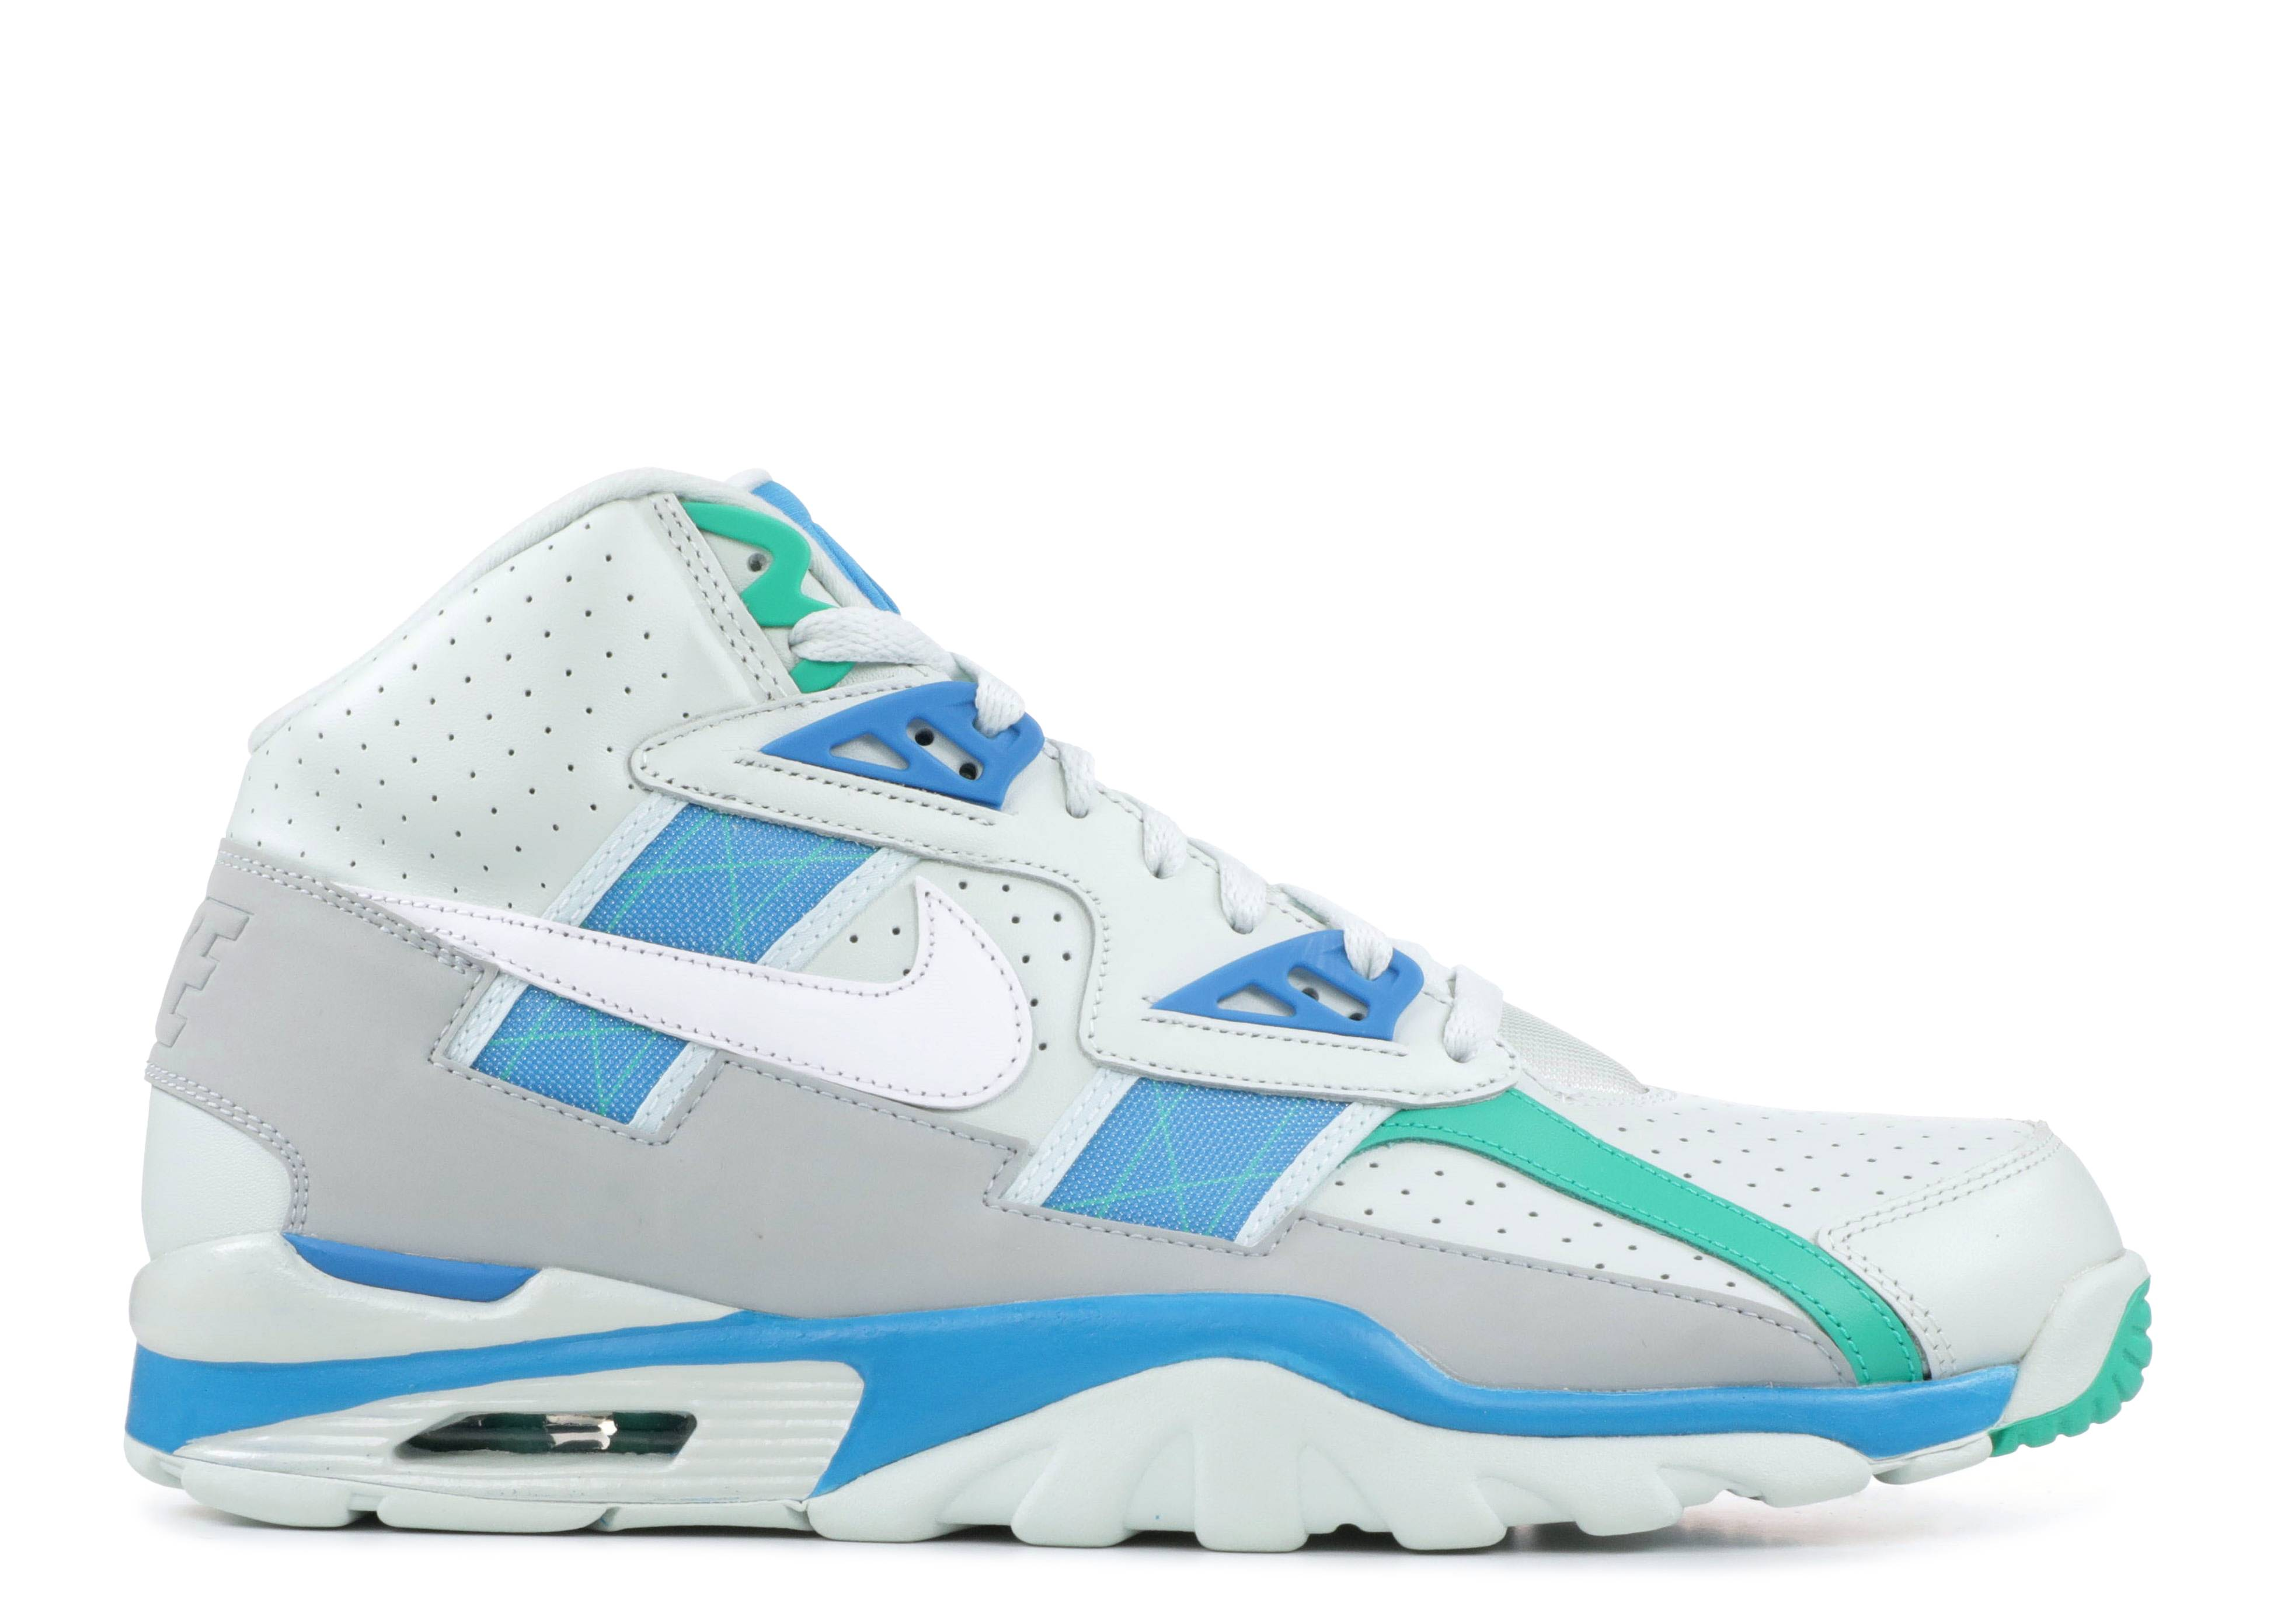 Air Trainer Sc High - Nike - 302346 019 - barely grey   white-blue orbit ... 06bf5fbf6